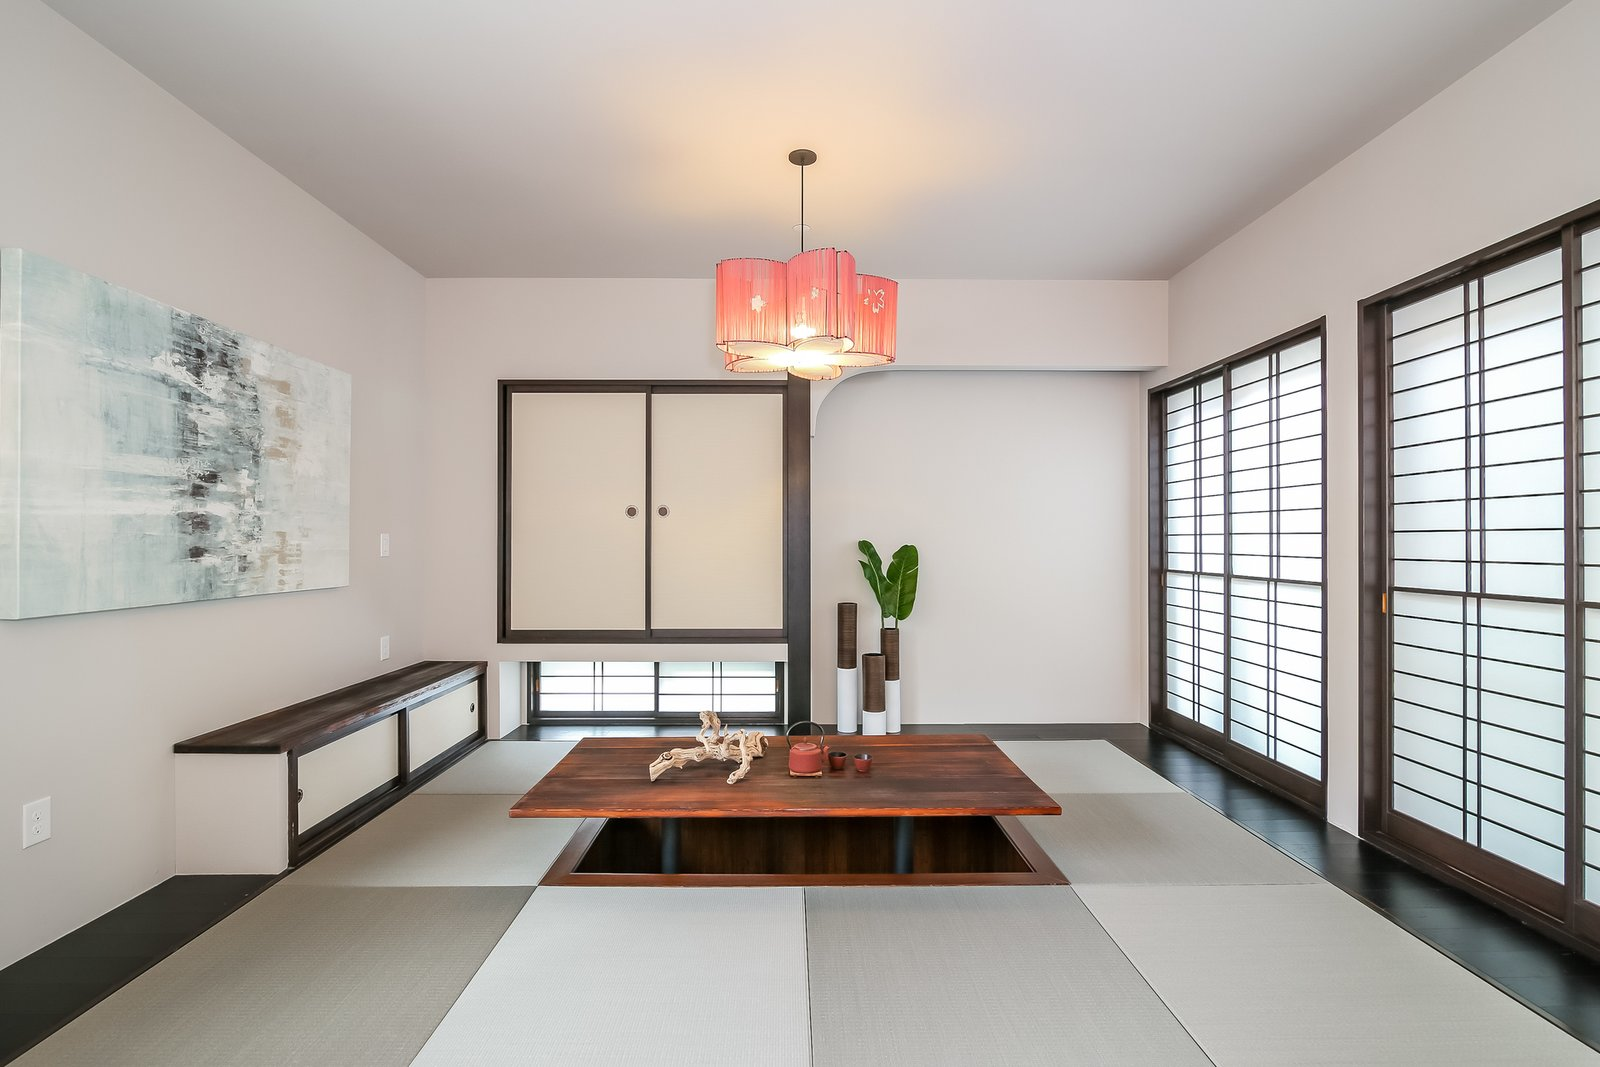 Living Room, Pendant Lighting, and Medium Hardwood Floor The den features a Japanese-style tatami tea room with enough space for up to 12 people to sit.  Japanese Builder Ichijo Creates Net-Zero Energy Home by PlanOmatic